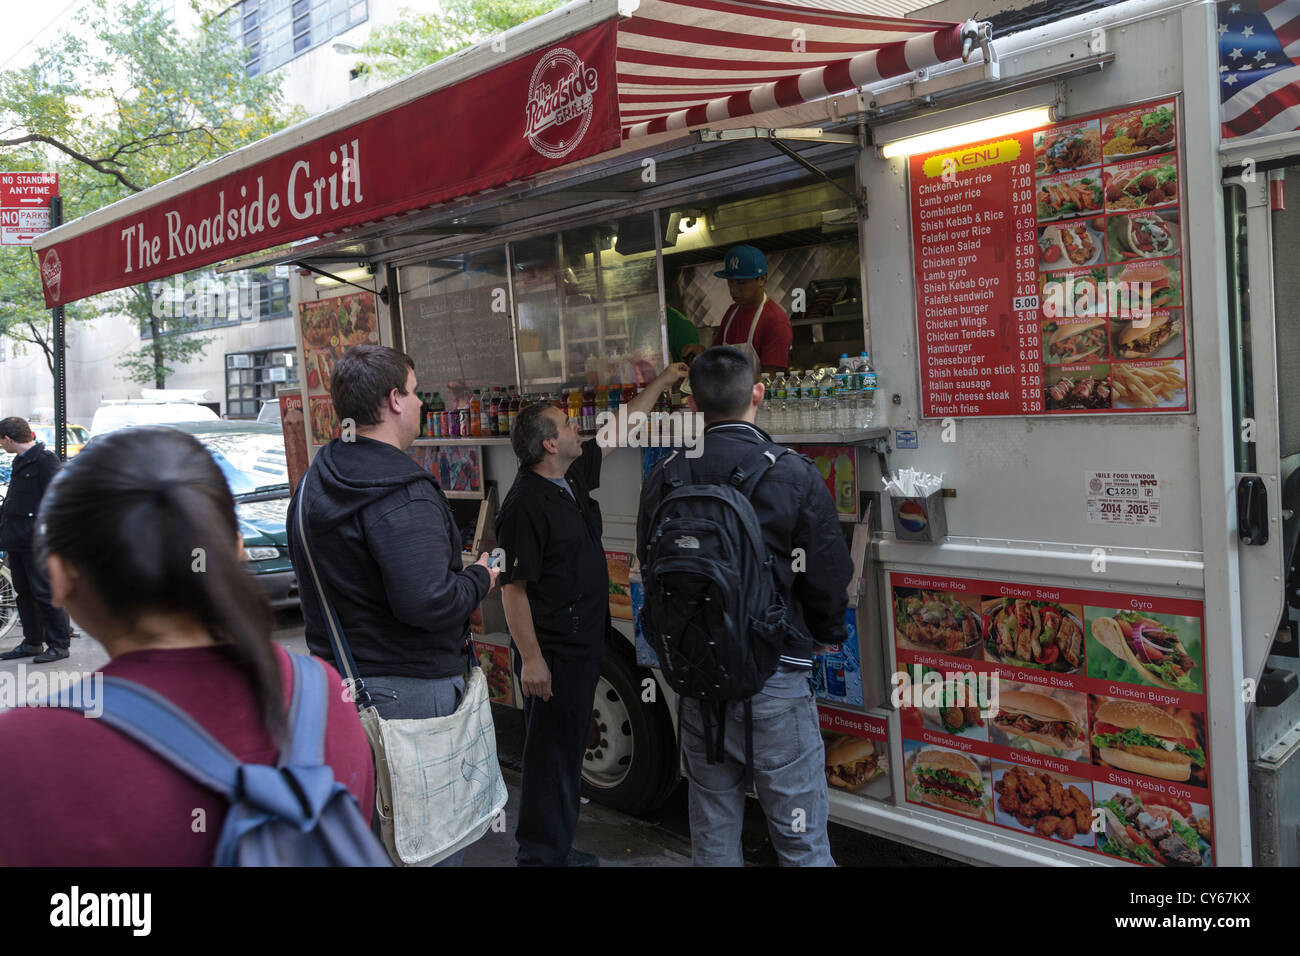 The Roadside Grill Mobile Food Truck Hunter College 68th Street And Lexington Avenue Manhattan New York City USA